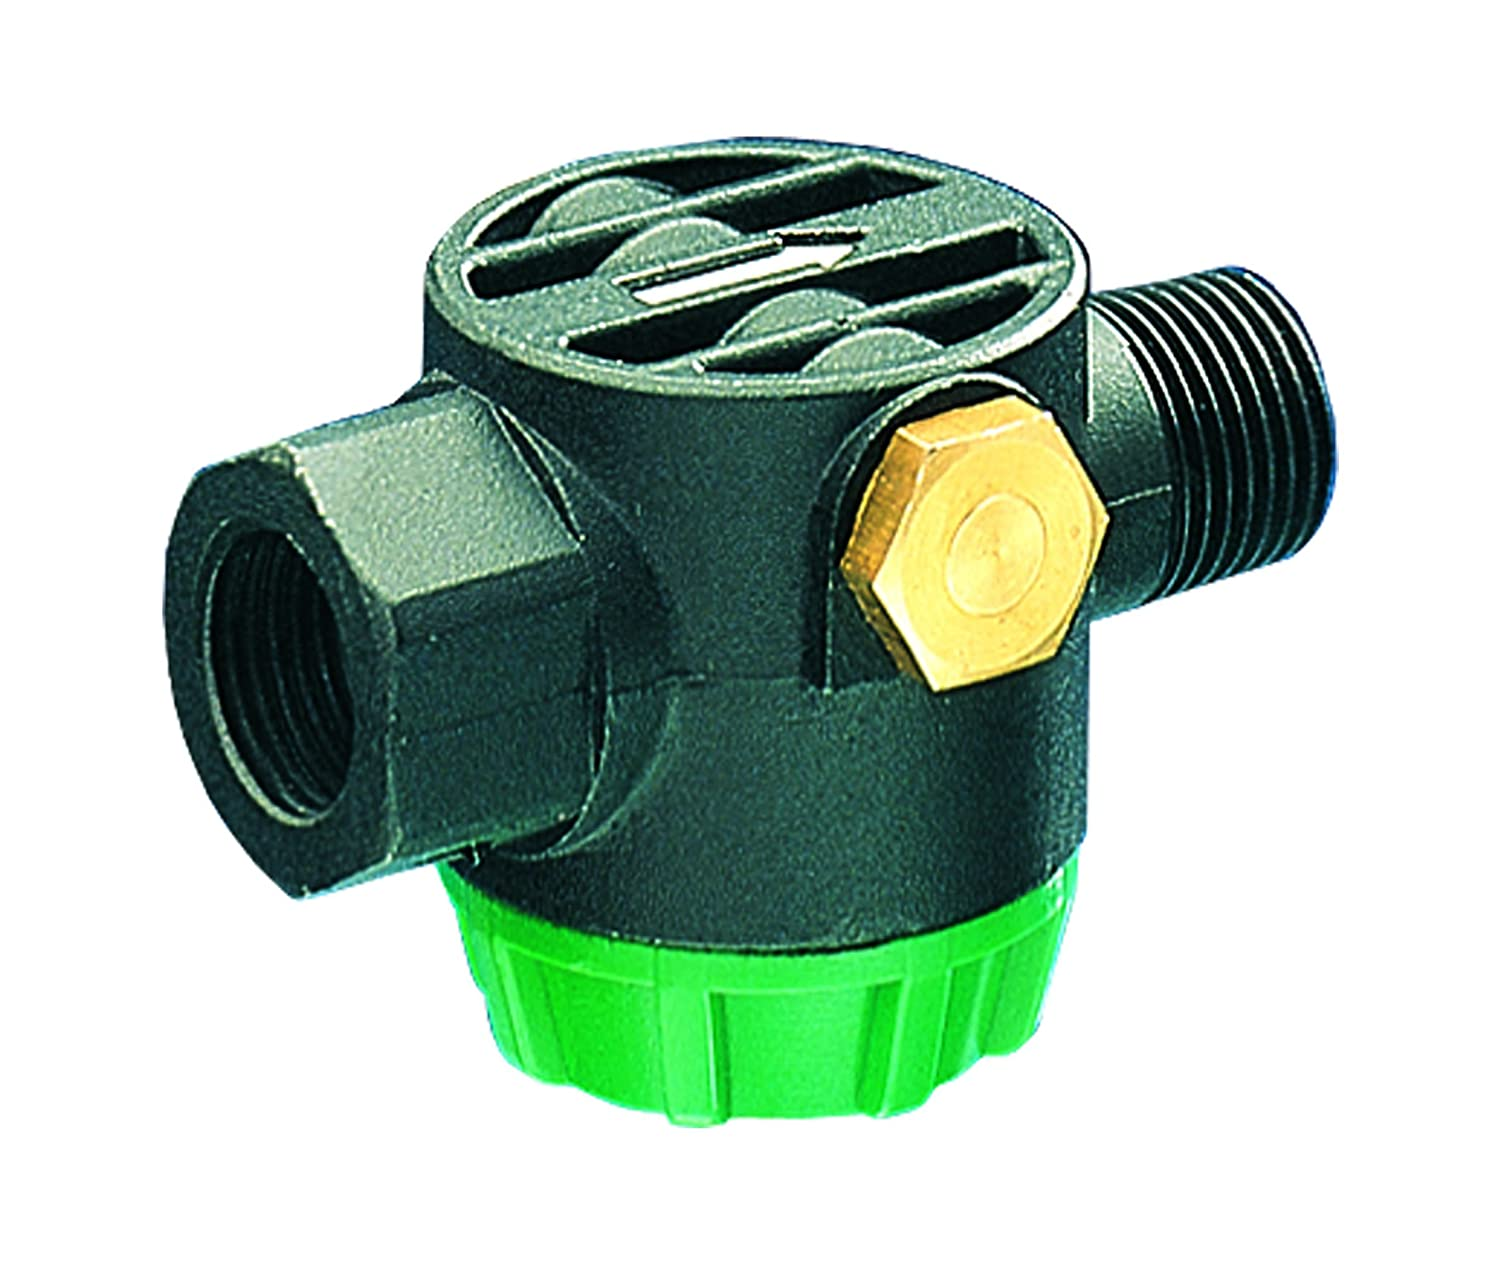 outlet General Pump ZMFIL Low Pressure in-Line GPM Filter 145 5.8 psi Ranking TOP3